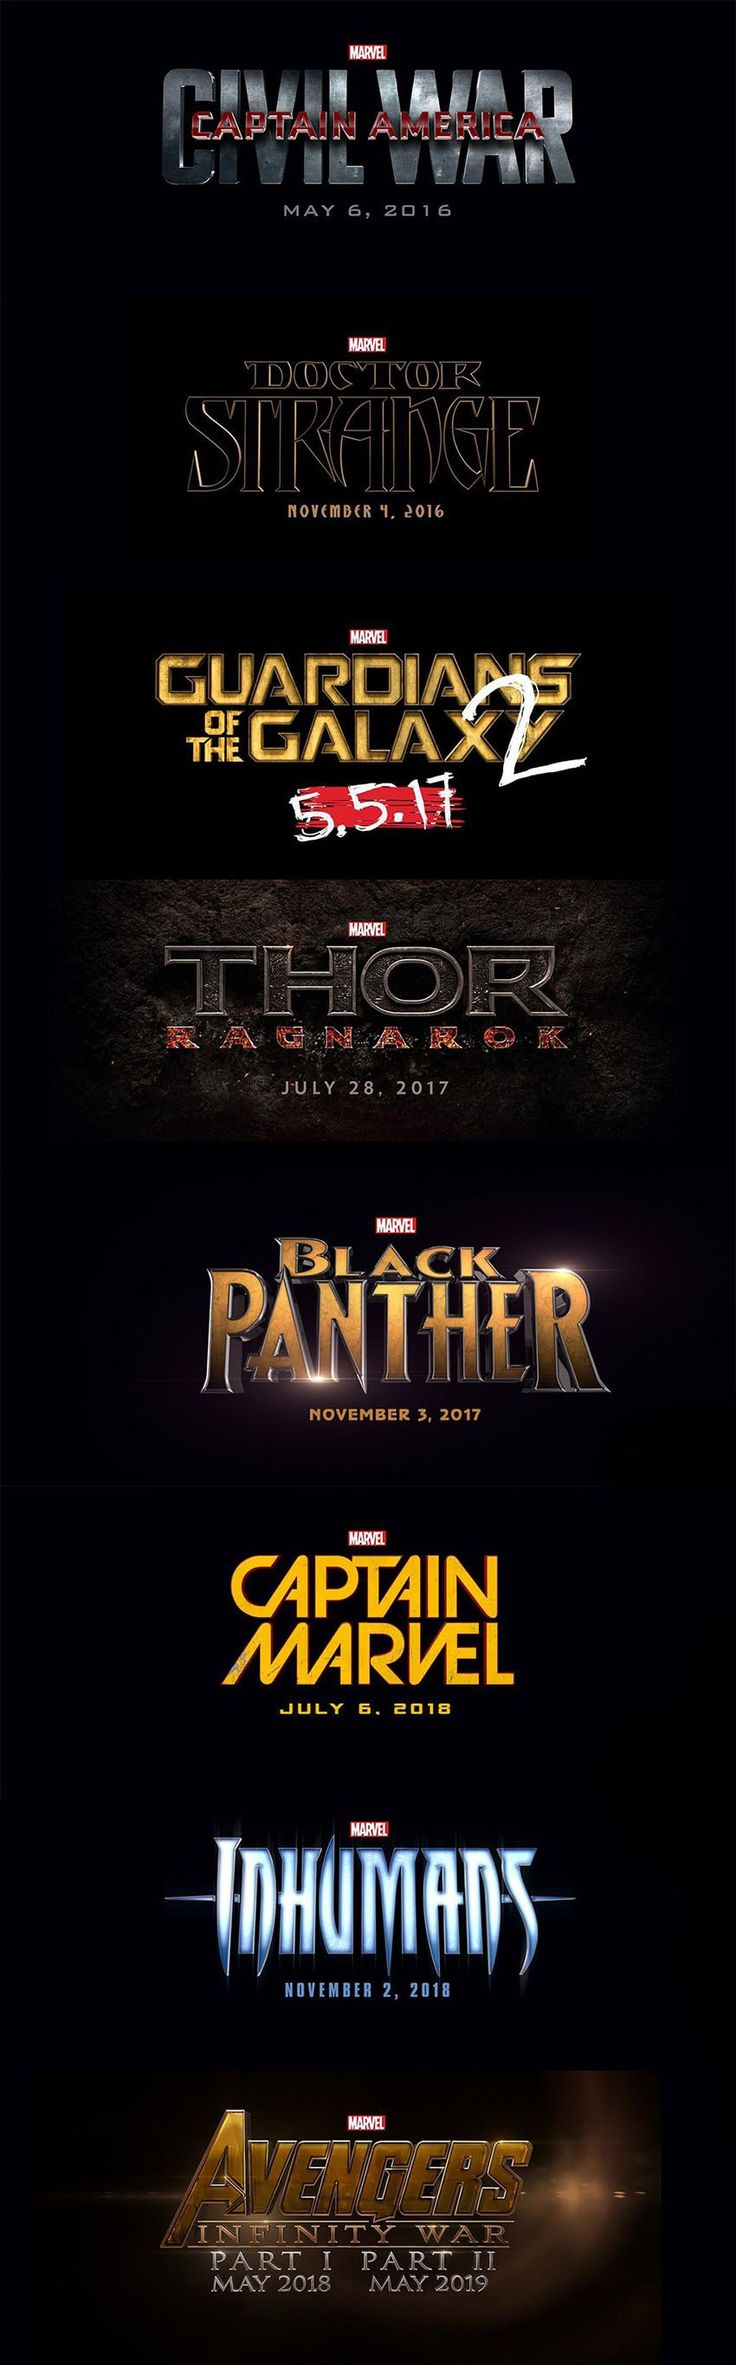 Black Panther, Captain Marvel and Inhumans join the Marvel Cinematic Universe